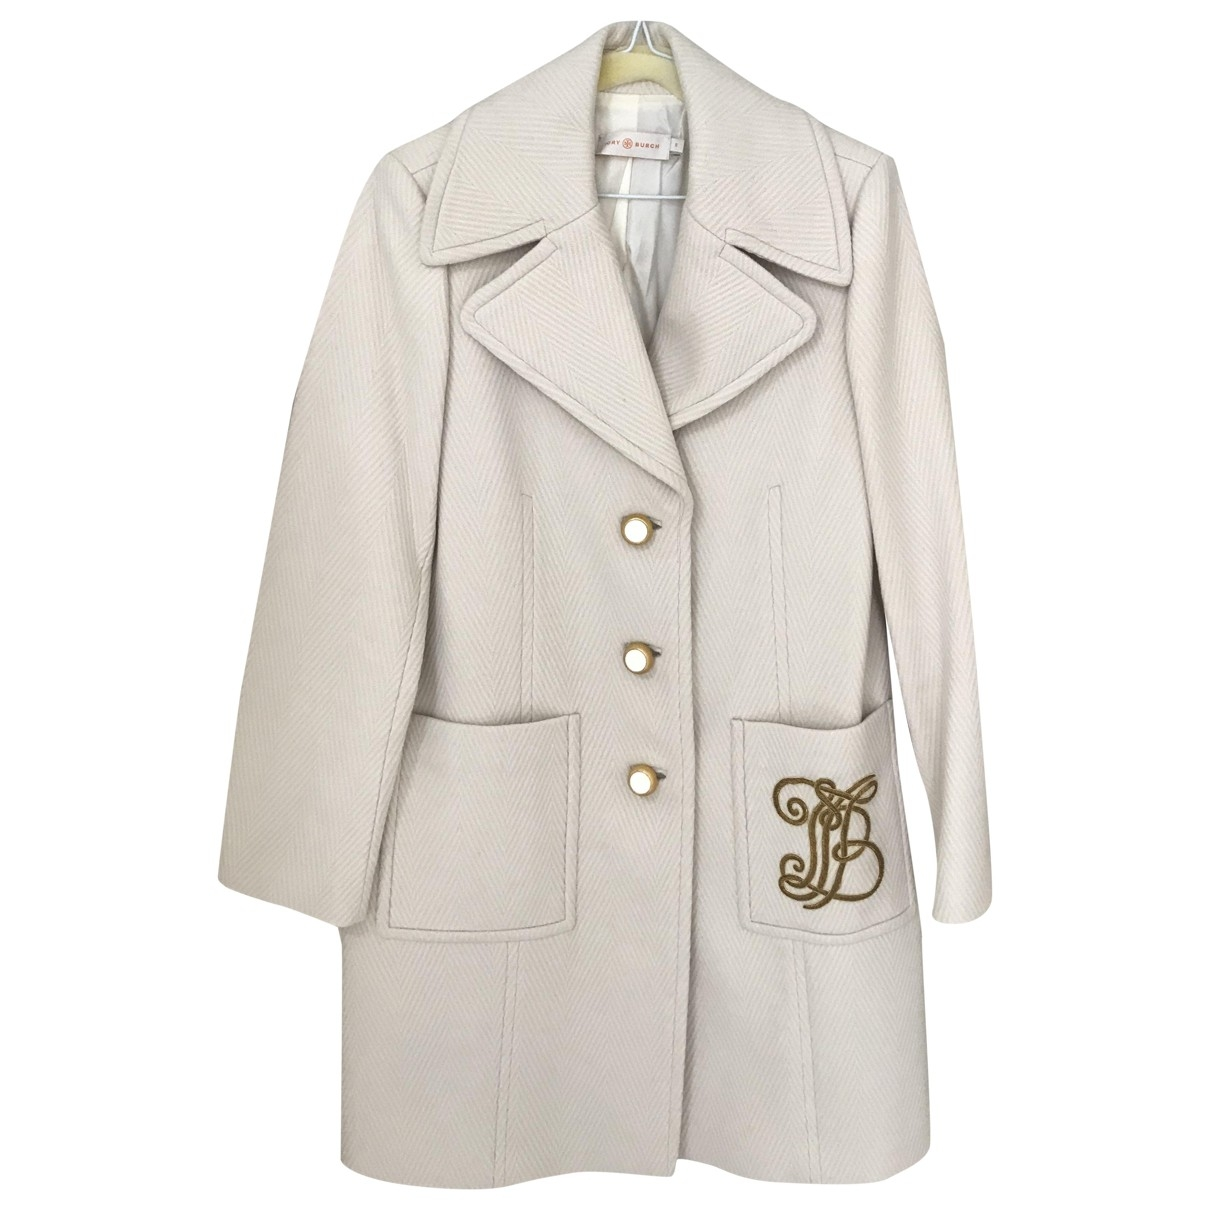 Tory Burch \N Beige Wool coat for Women 6 US